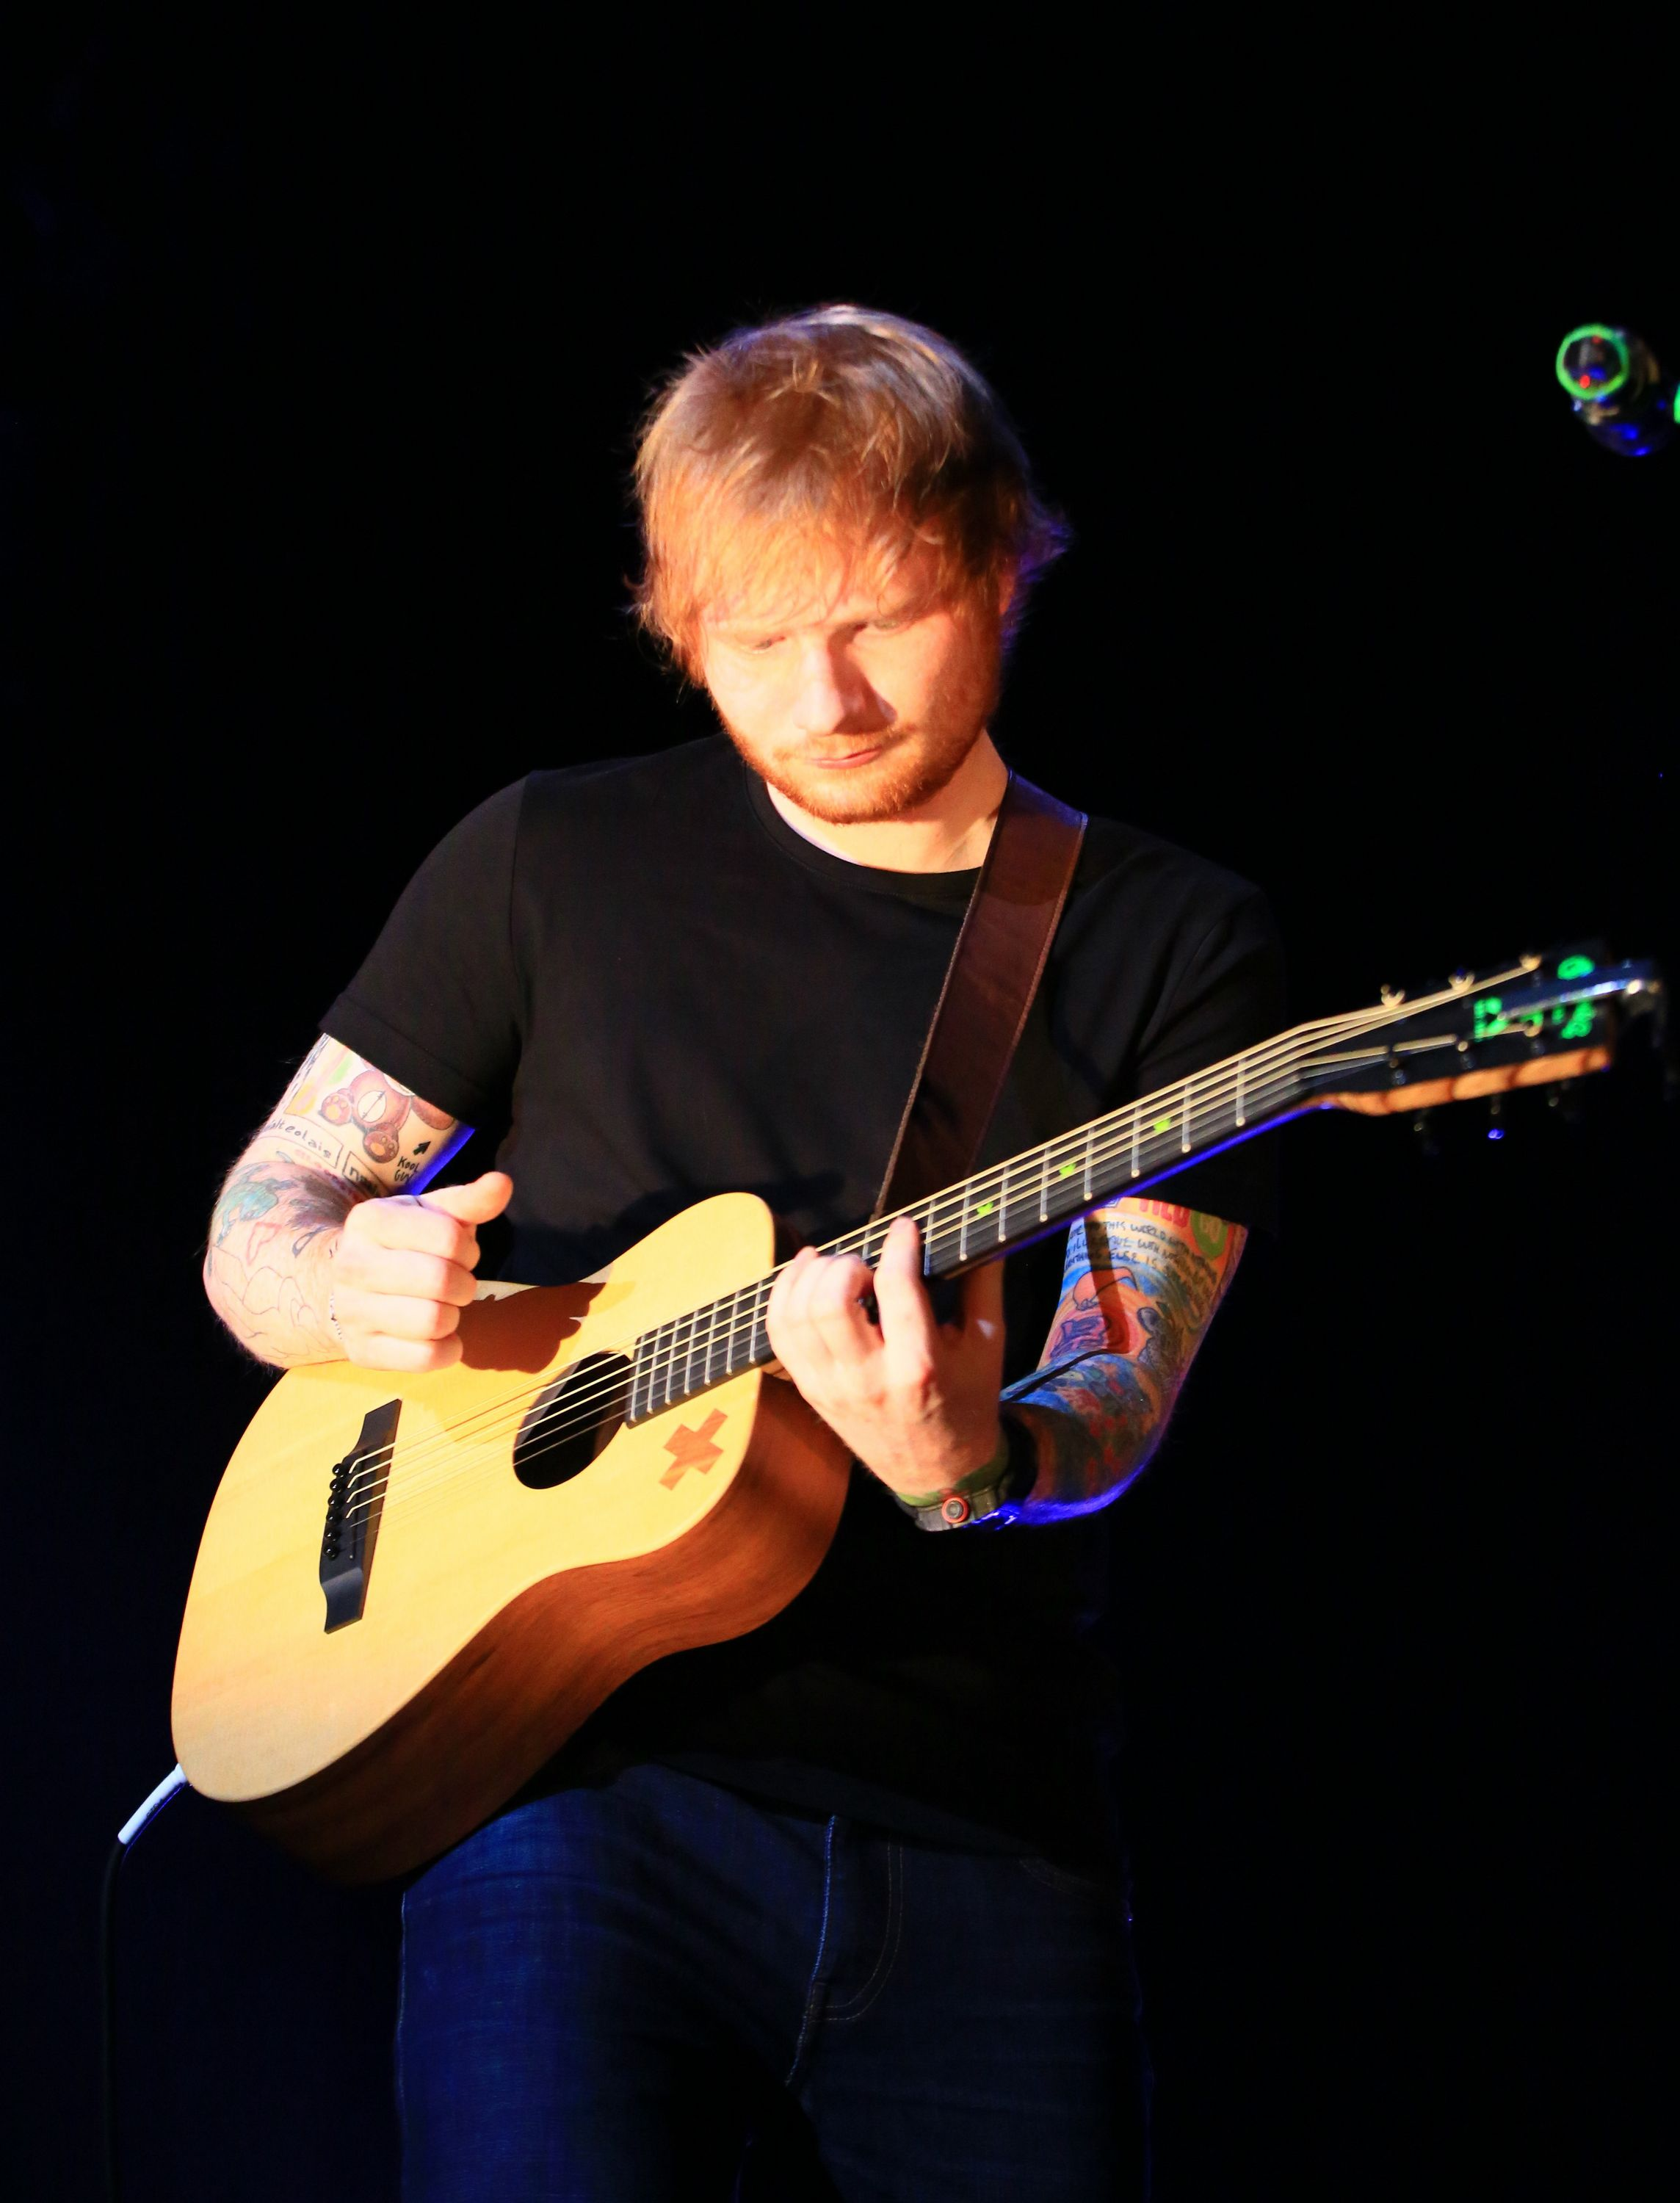 https://www.theplace.ru/archive/ed_sheeran/img/07.03.2015_mercedes_benz_arena_shanghai,_china.jpg